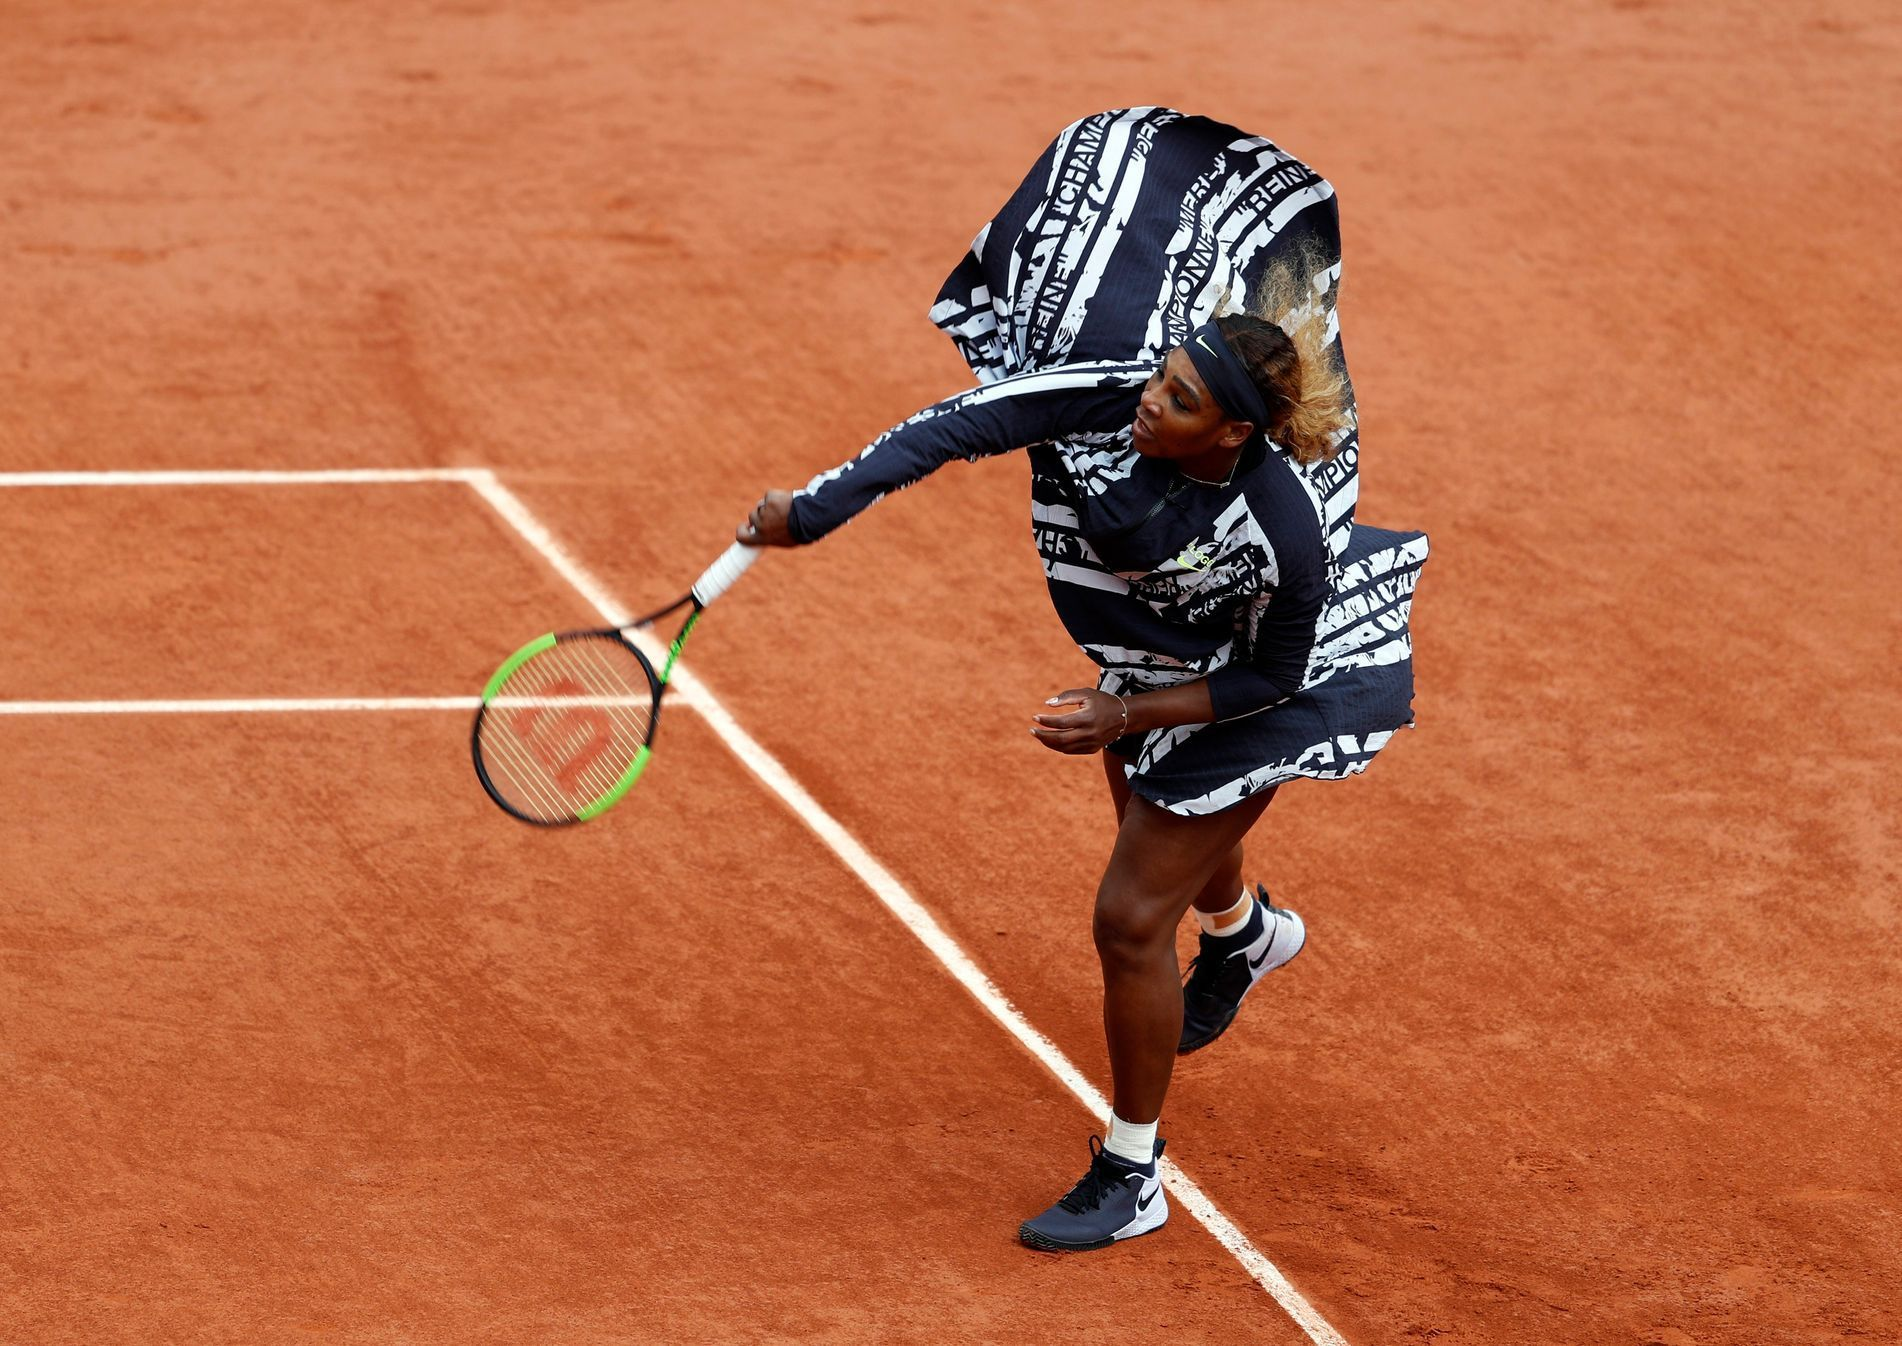 Móda na French Open 2019 (Serena Williamsová)